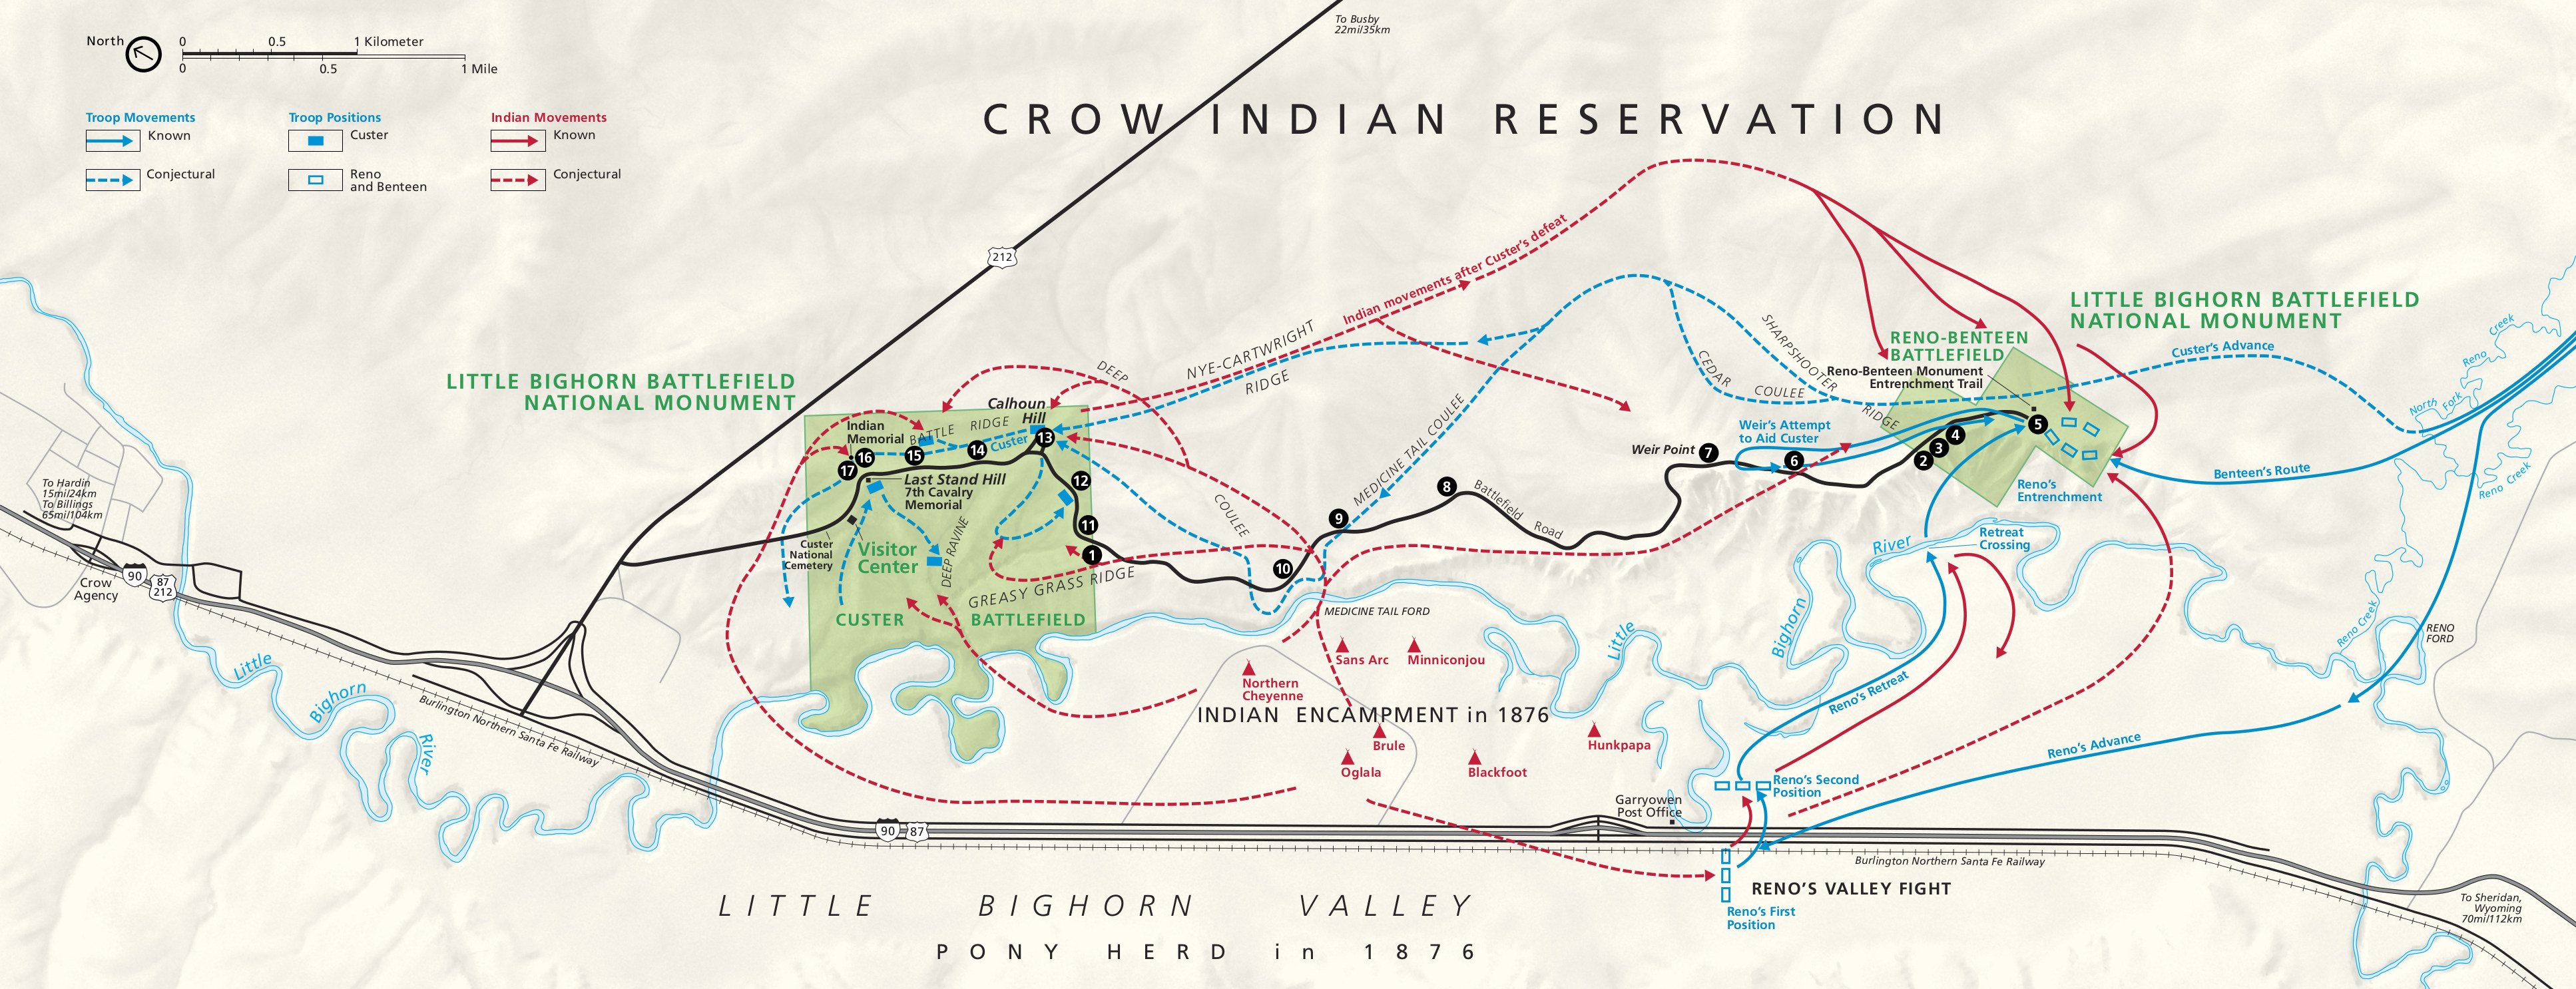 Little Bighorn Maps NPMapscom Just Free Maps Period - Little bighorn river location on us map